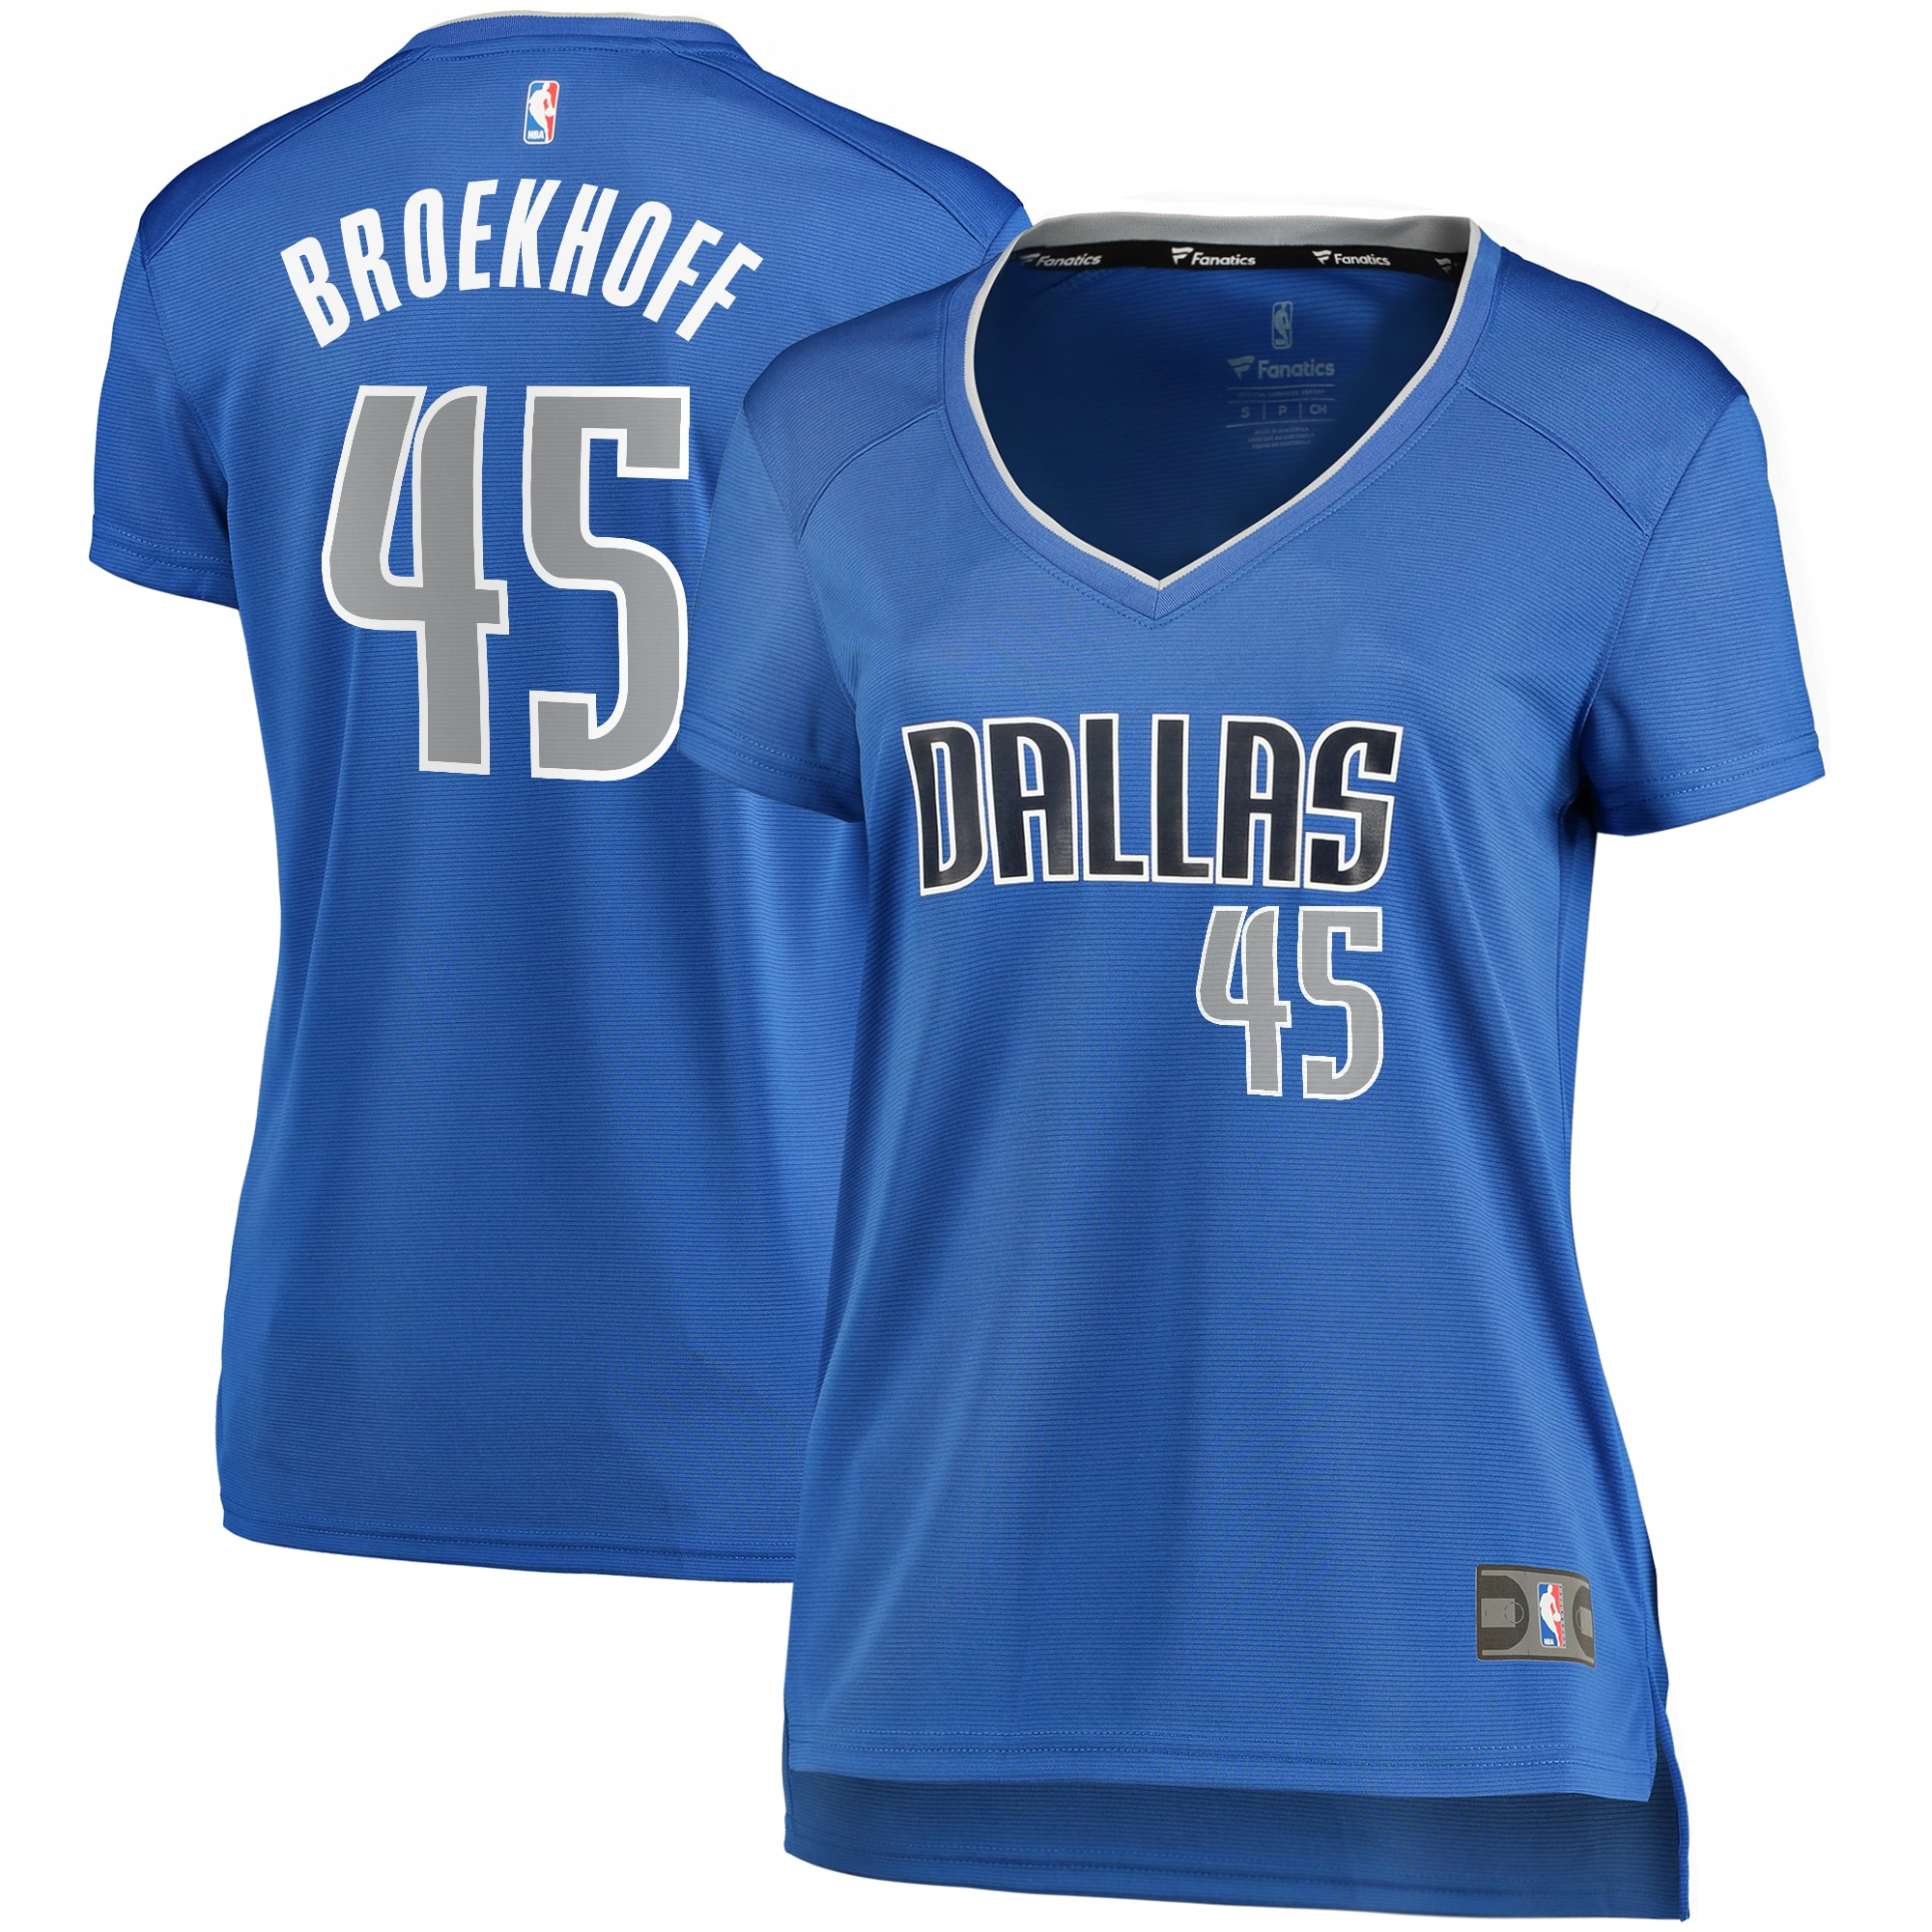 Ryan Broekhoff Dallas Mavericks Fanatics Branded Women's Fast Break Player Replica Jersey - Icon Edition - Blue